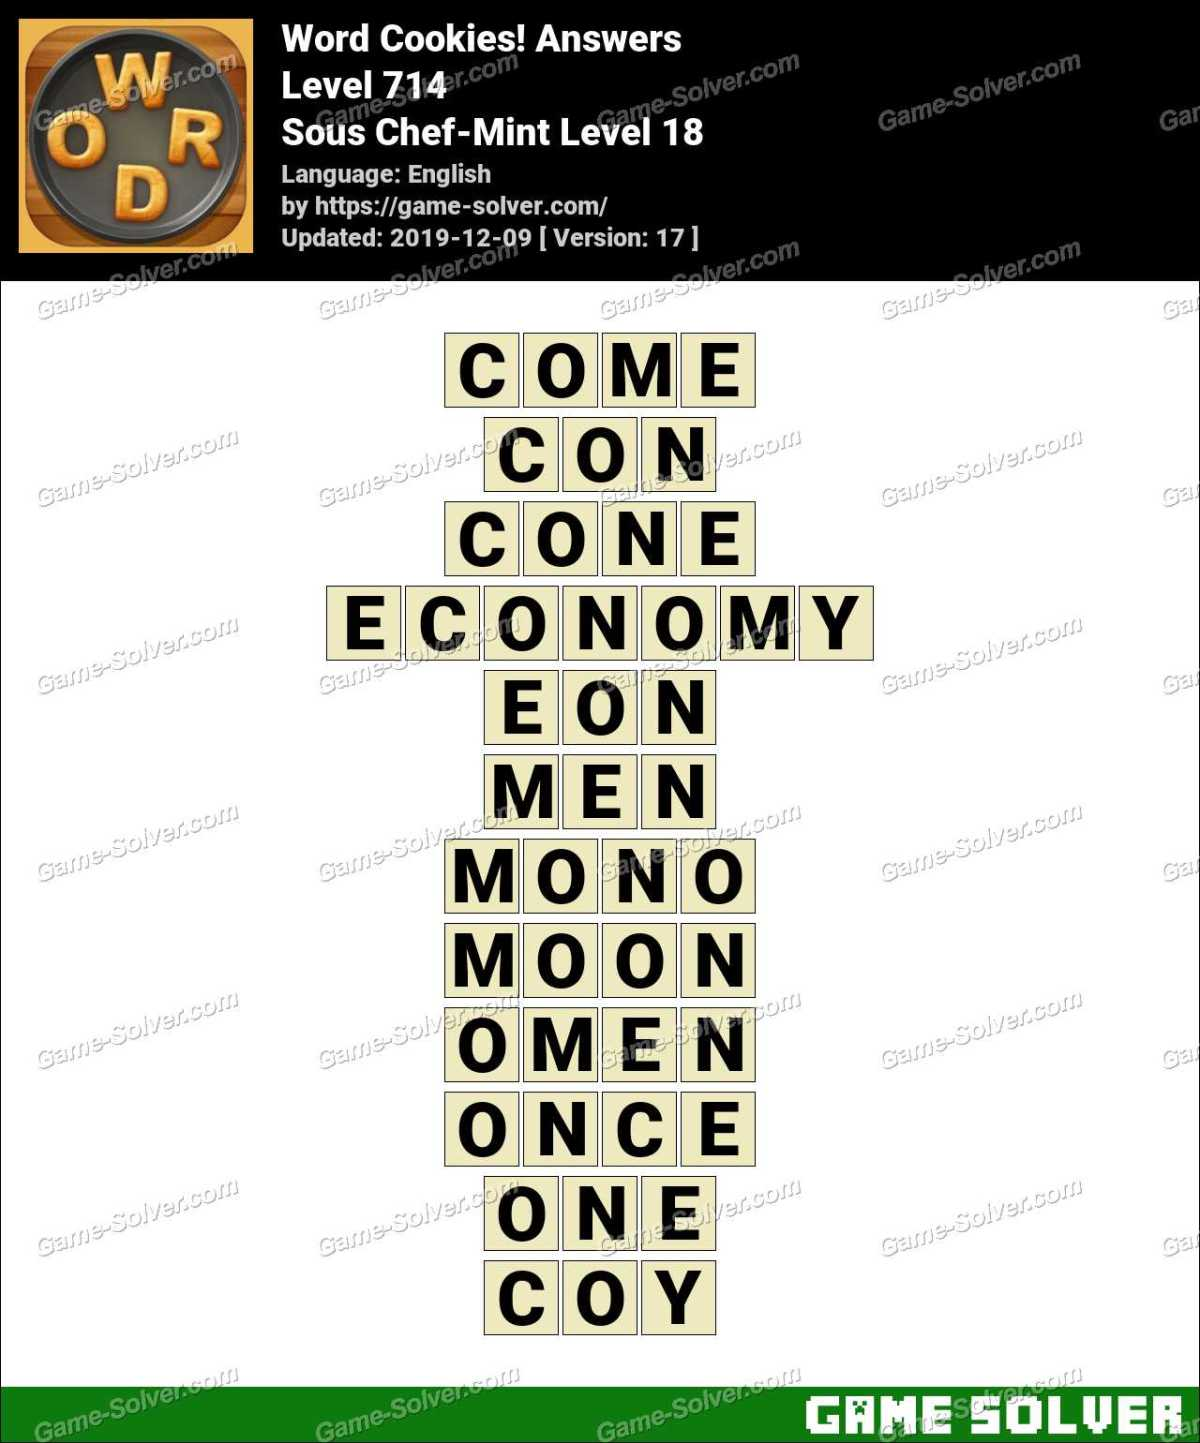 Word Cookies Sous Chef-Mint Level 18 Answers